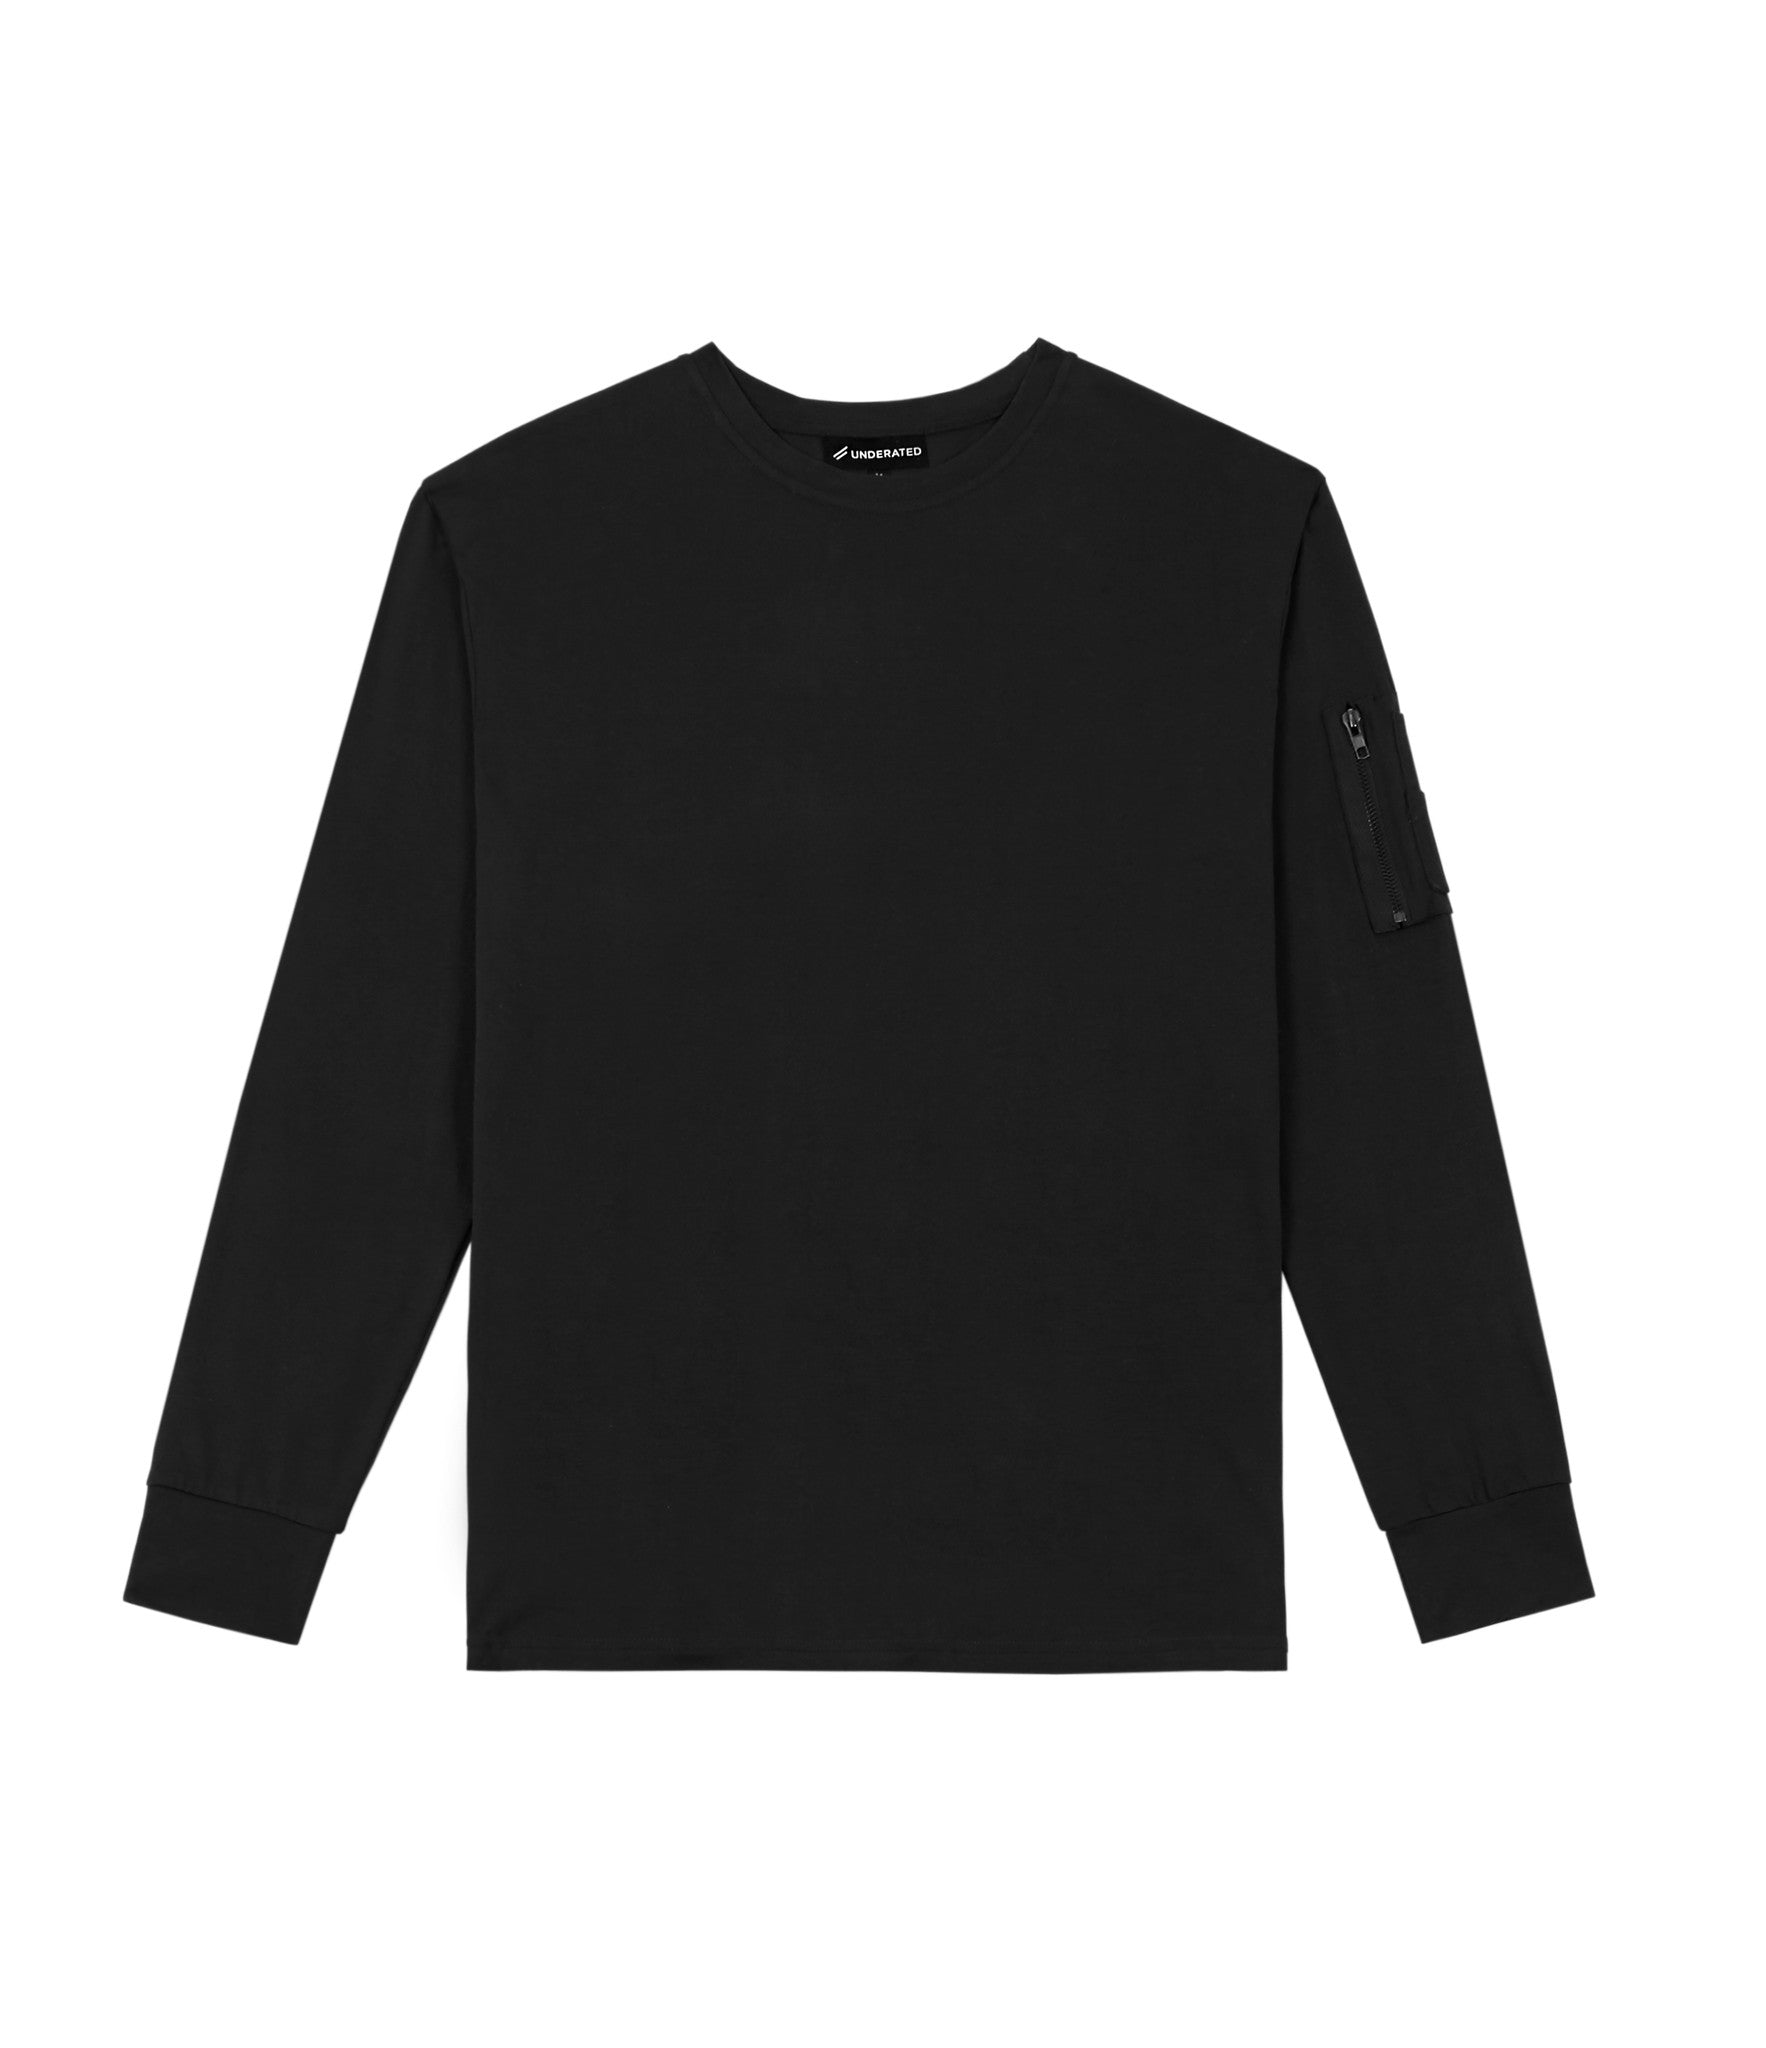 LS303 Utility Long-Sleeve Tee - Black - underated london - underatedco - 1